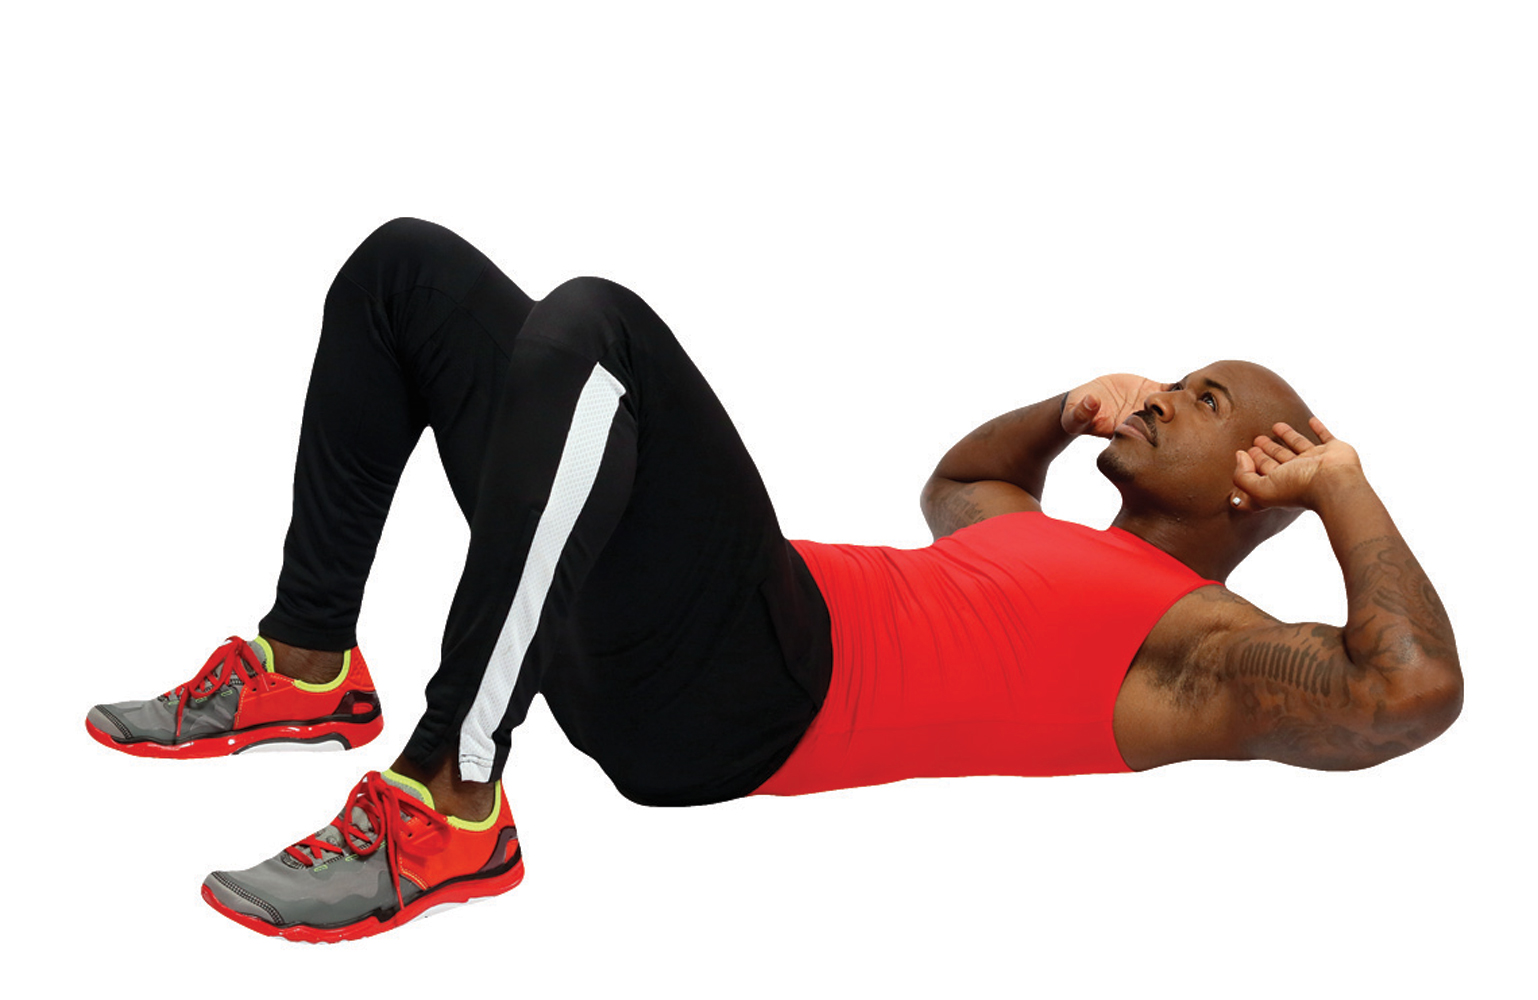 Repeat Interval A, then do:                                 Crunches (60 seconds)